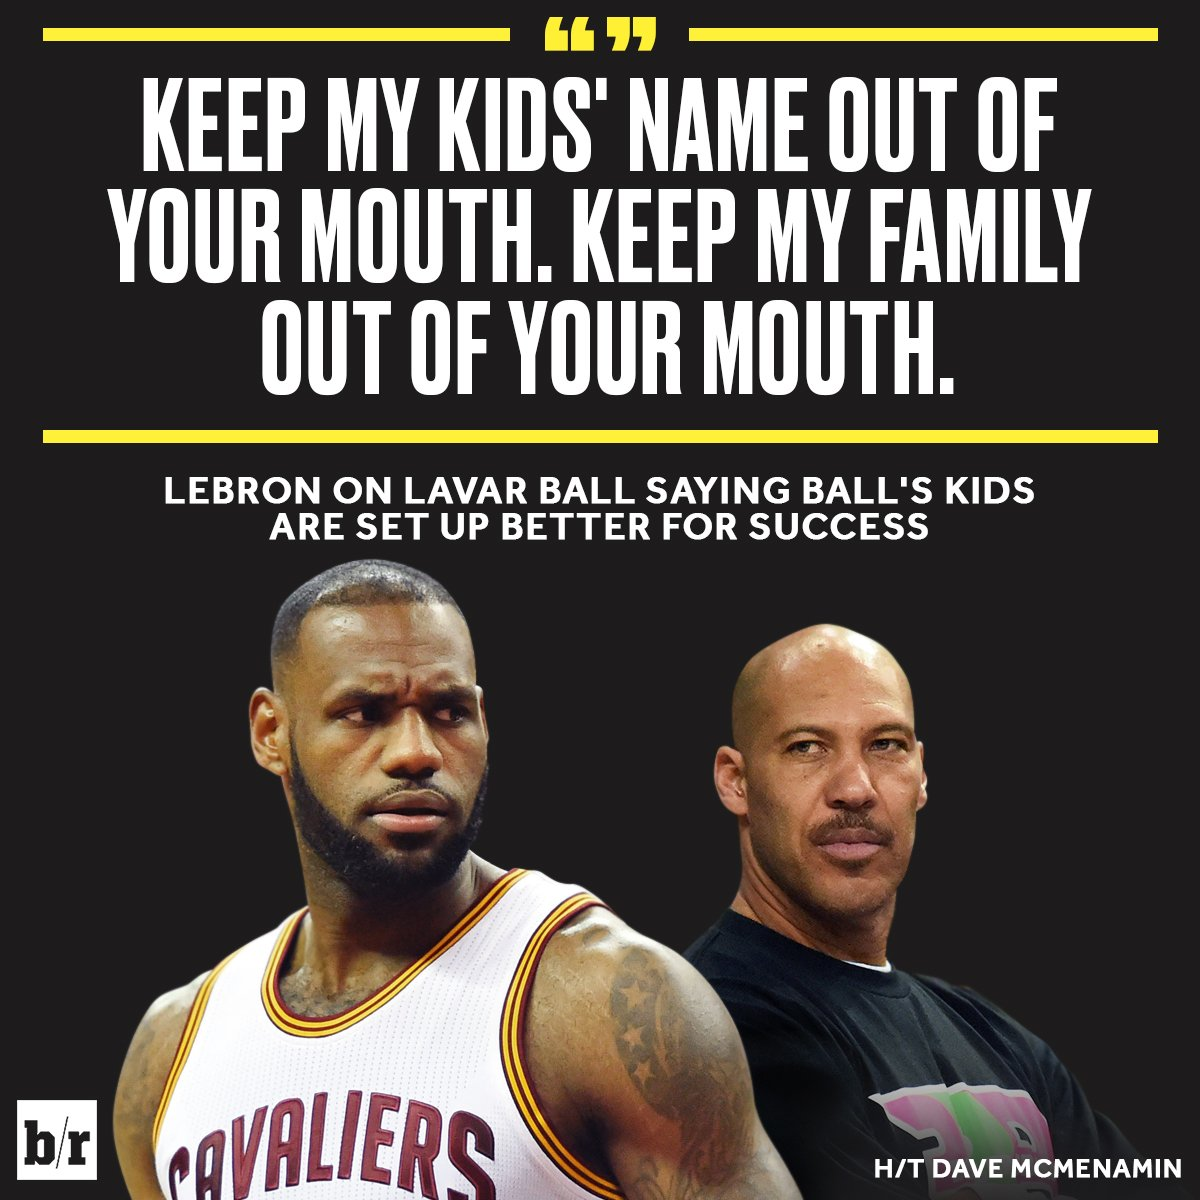 LeBron has a message for LaVar Ball. https://t.co/YDd17dlqBl